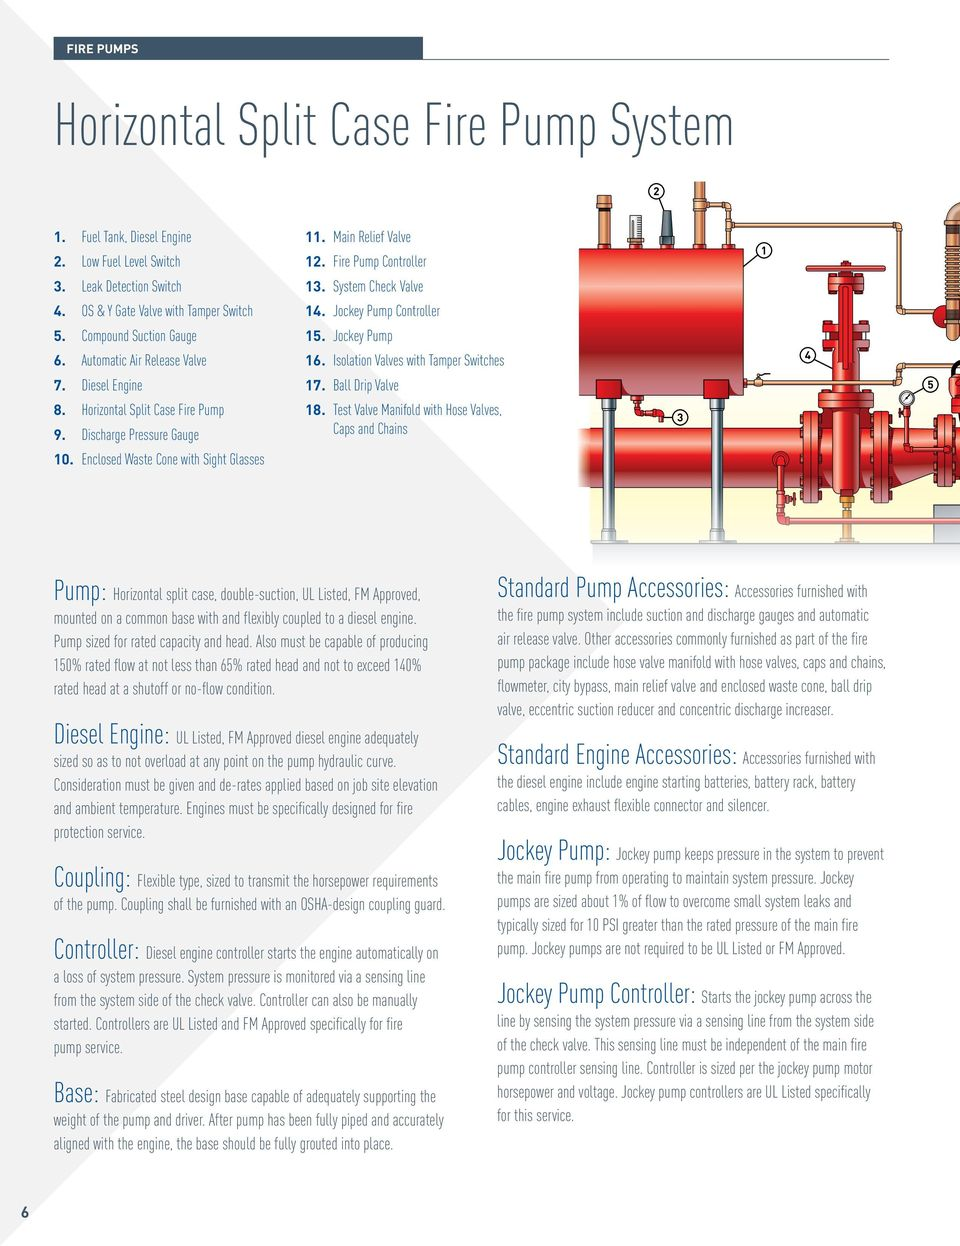 Fire Pump Controller 13. System Check Valve 14. Jockey Pump Controller 15. Jockey Pump 16. Isolation Valves with Tamper Switches 17. Ball Drip Valve 18.